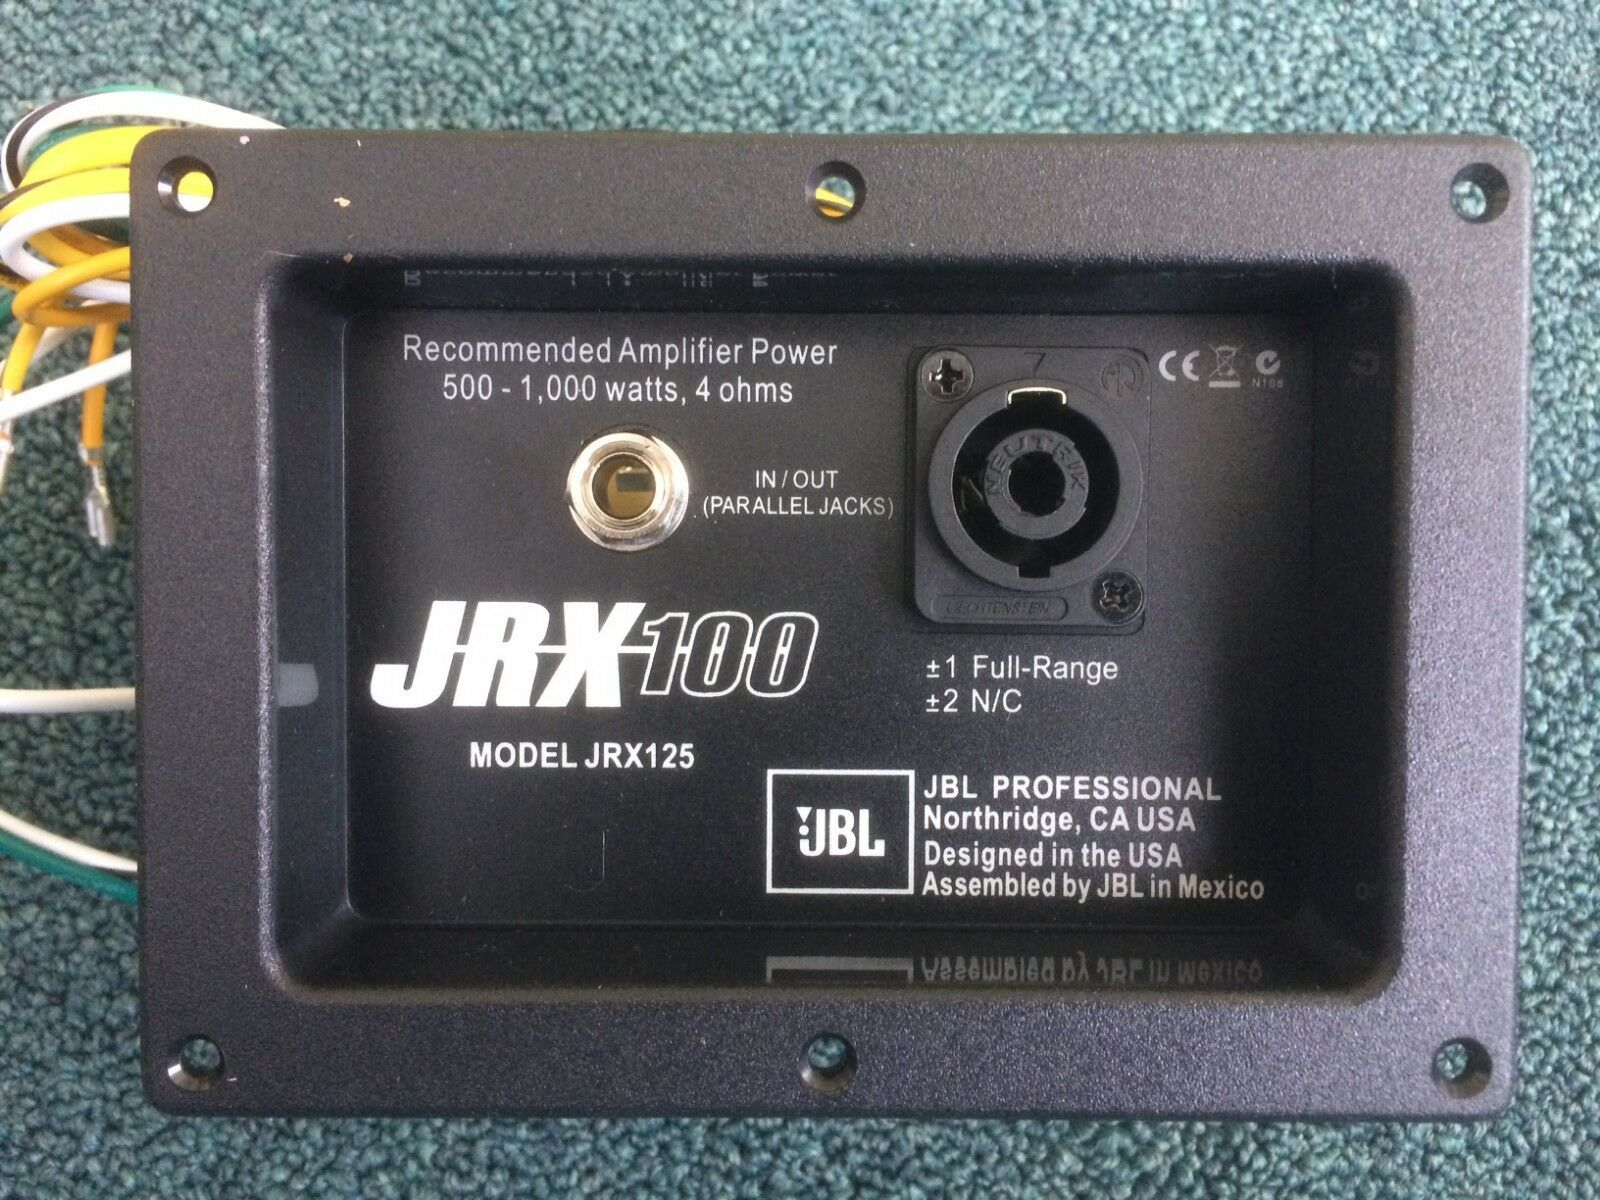 s l1600 jbl 364248 001 crossover network for jrx125 ebay  at honlapkeszites.co